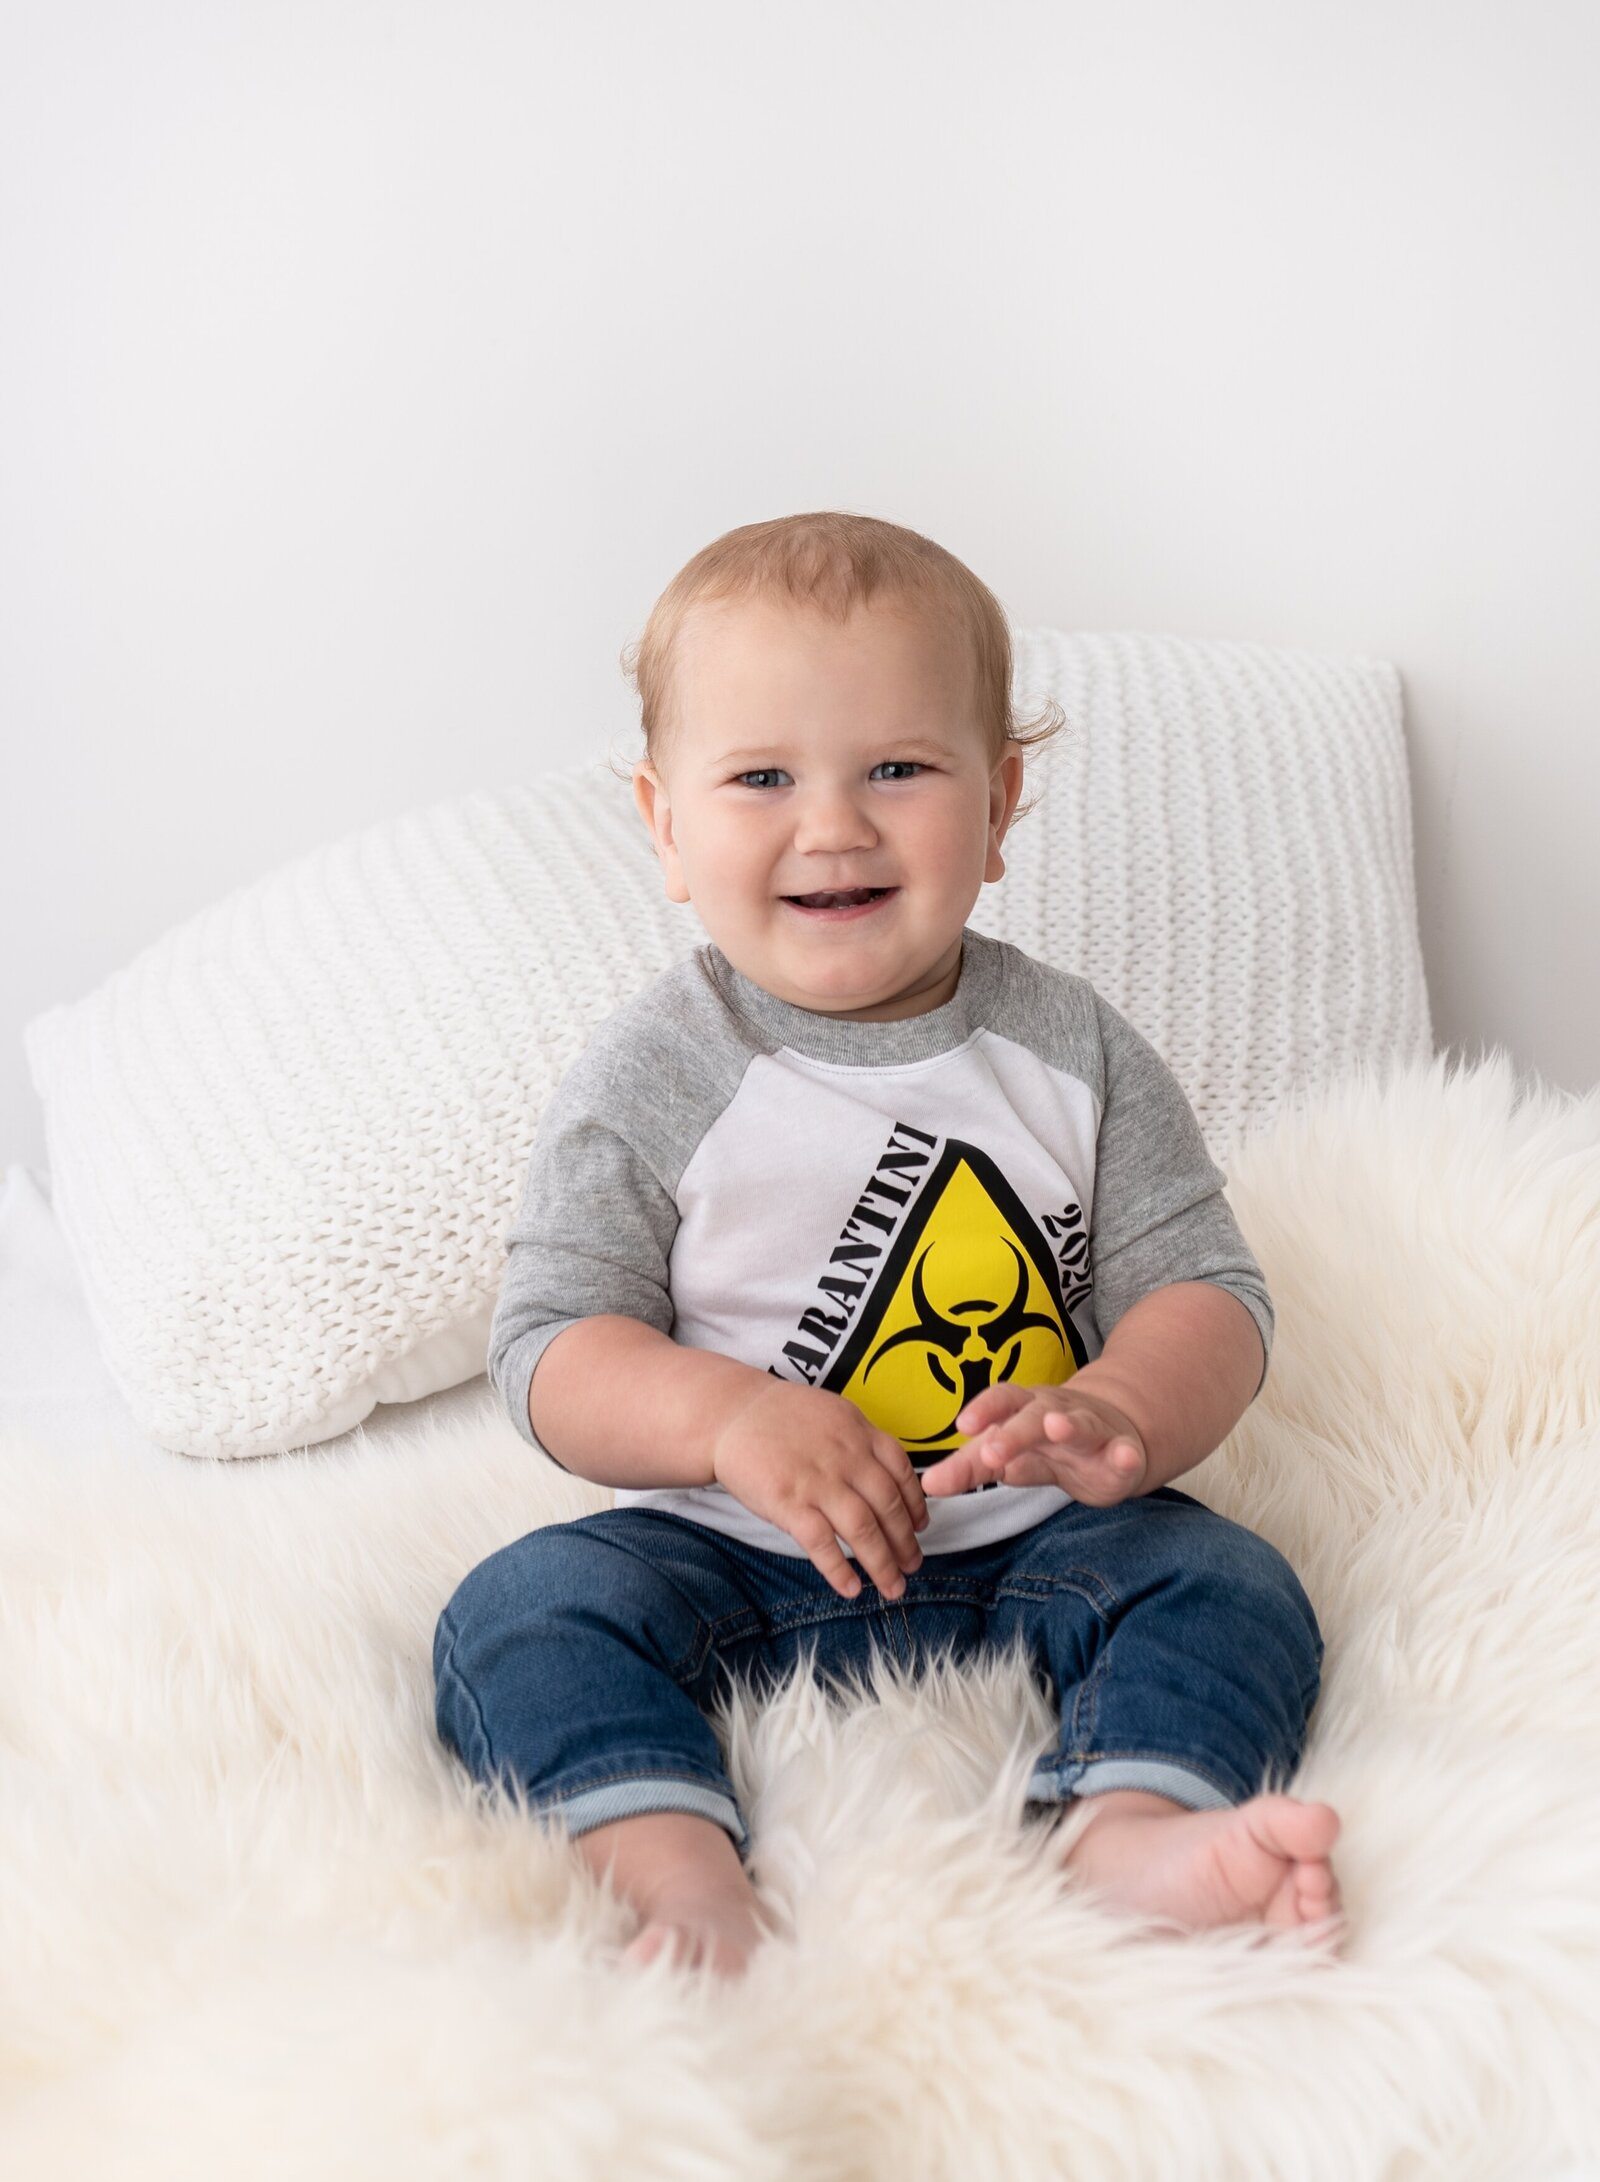 little boy smiling for camera and wearing a shirt that says quarantine birthday